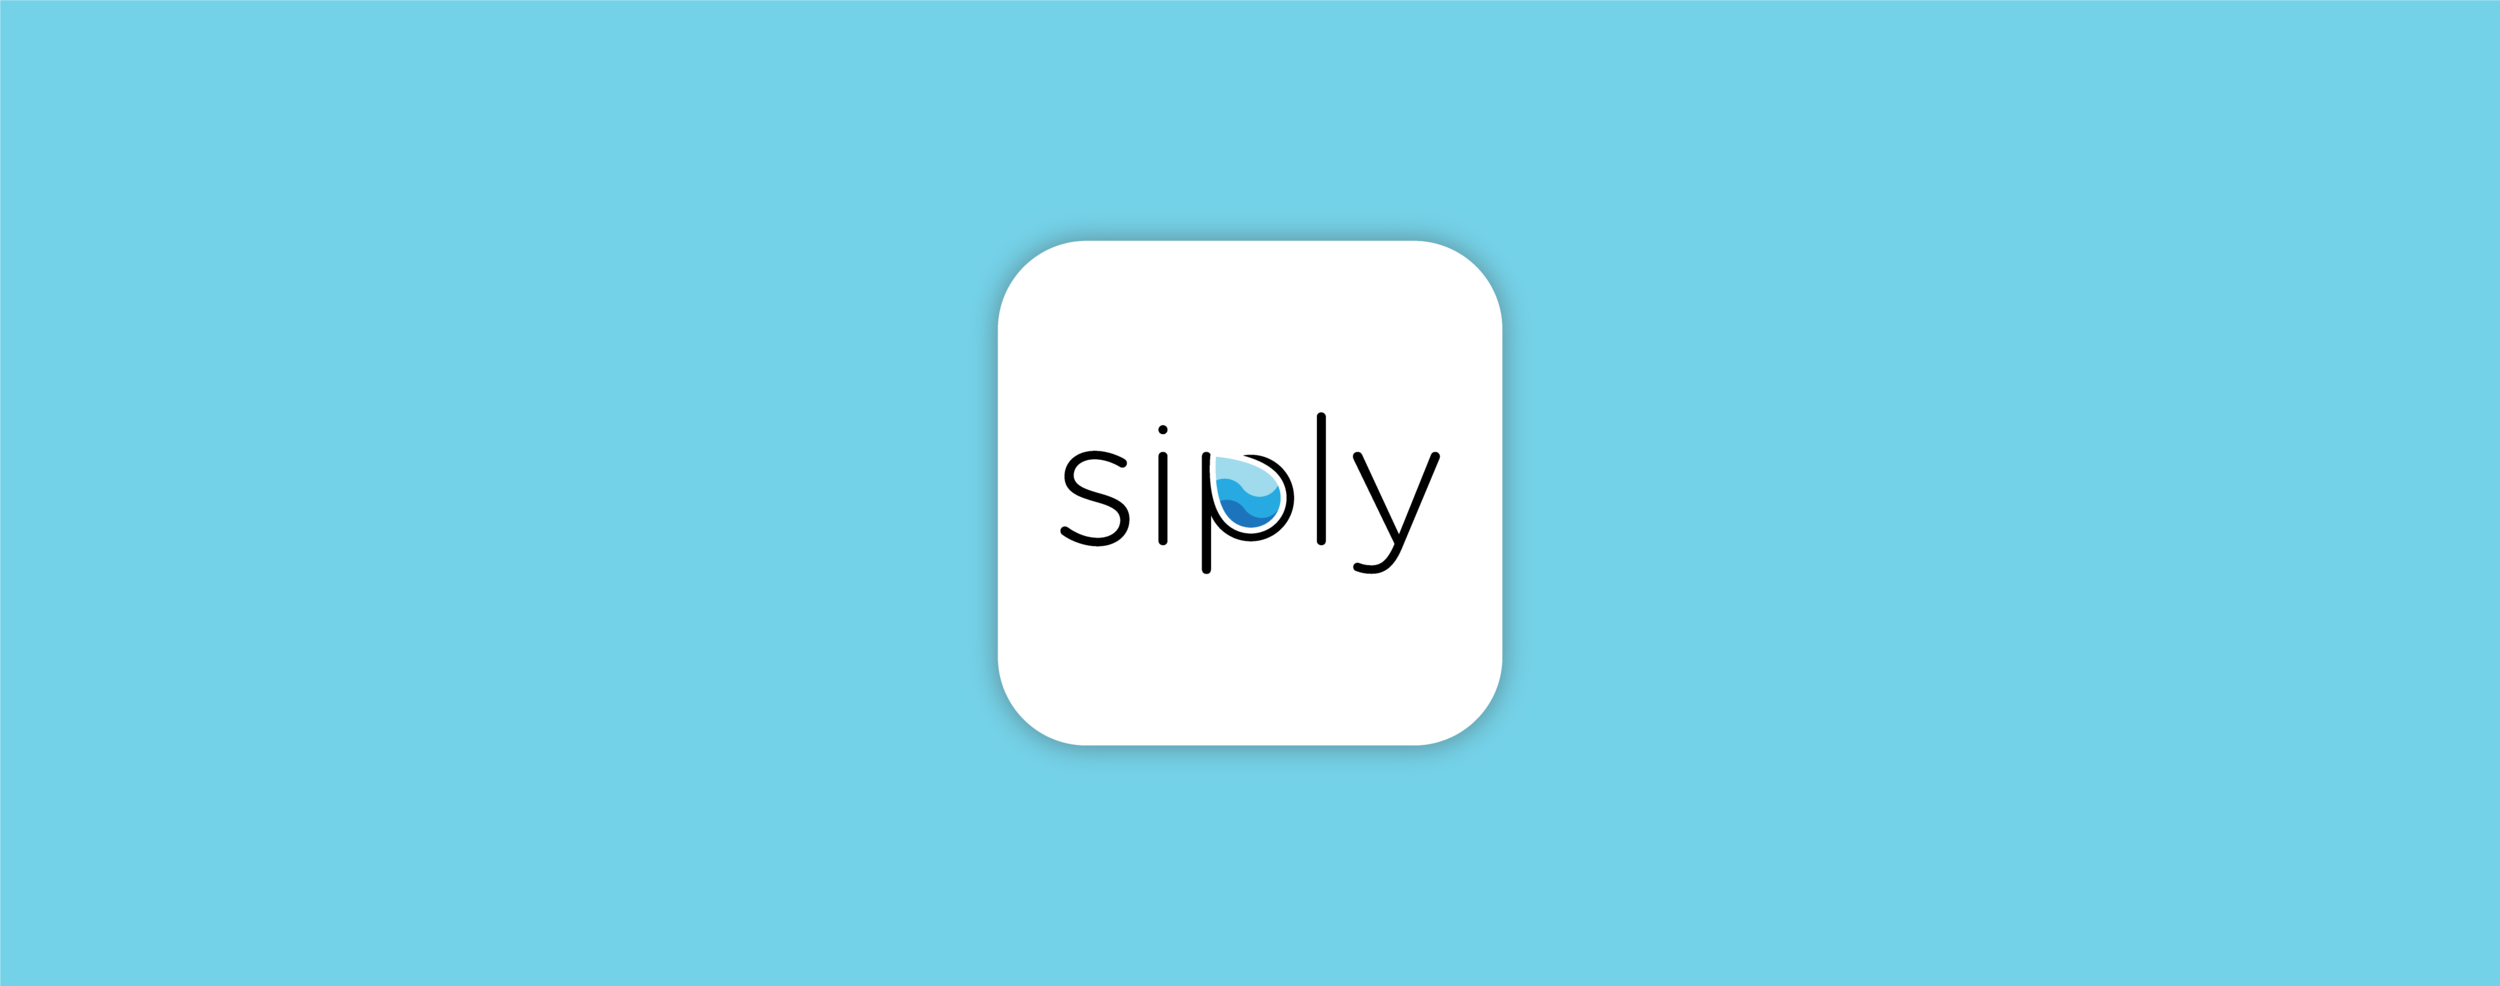 Siply  Siply is a UT Austin startup idea that revolutionizes the way you track your daily water intake.